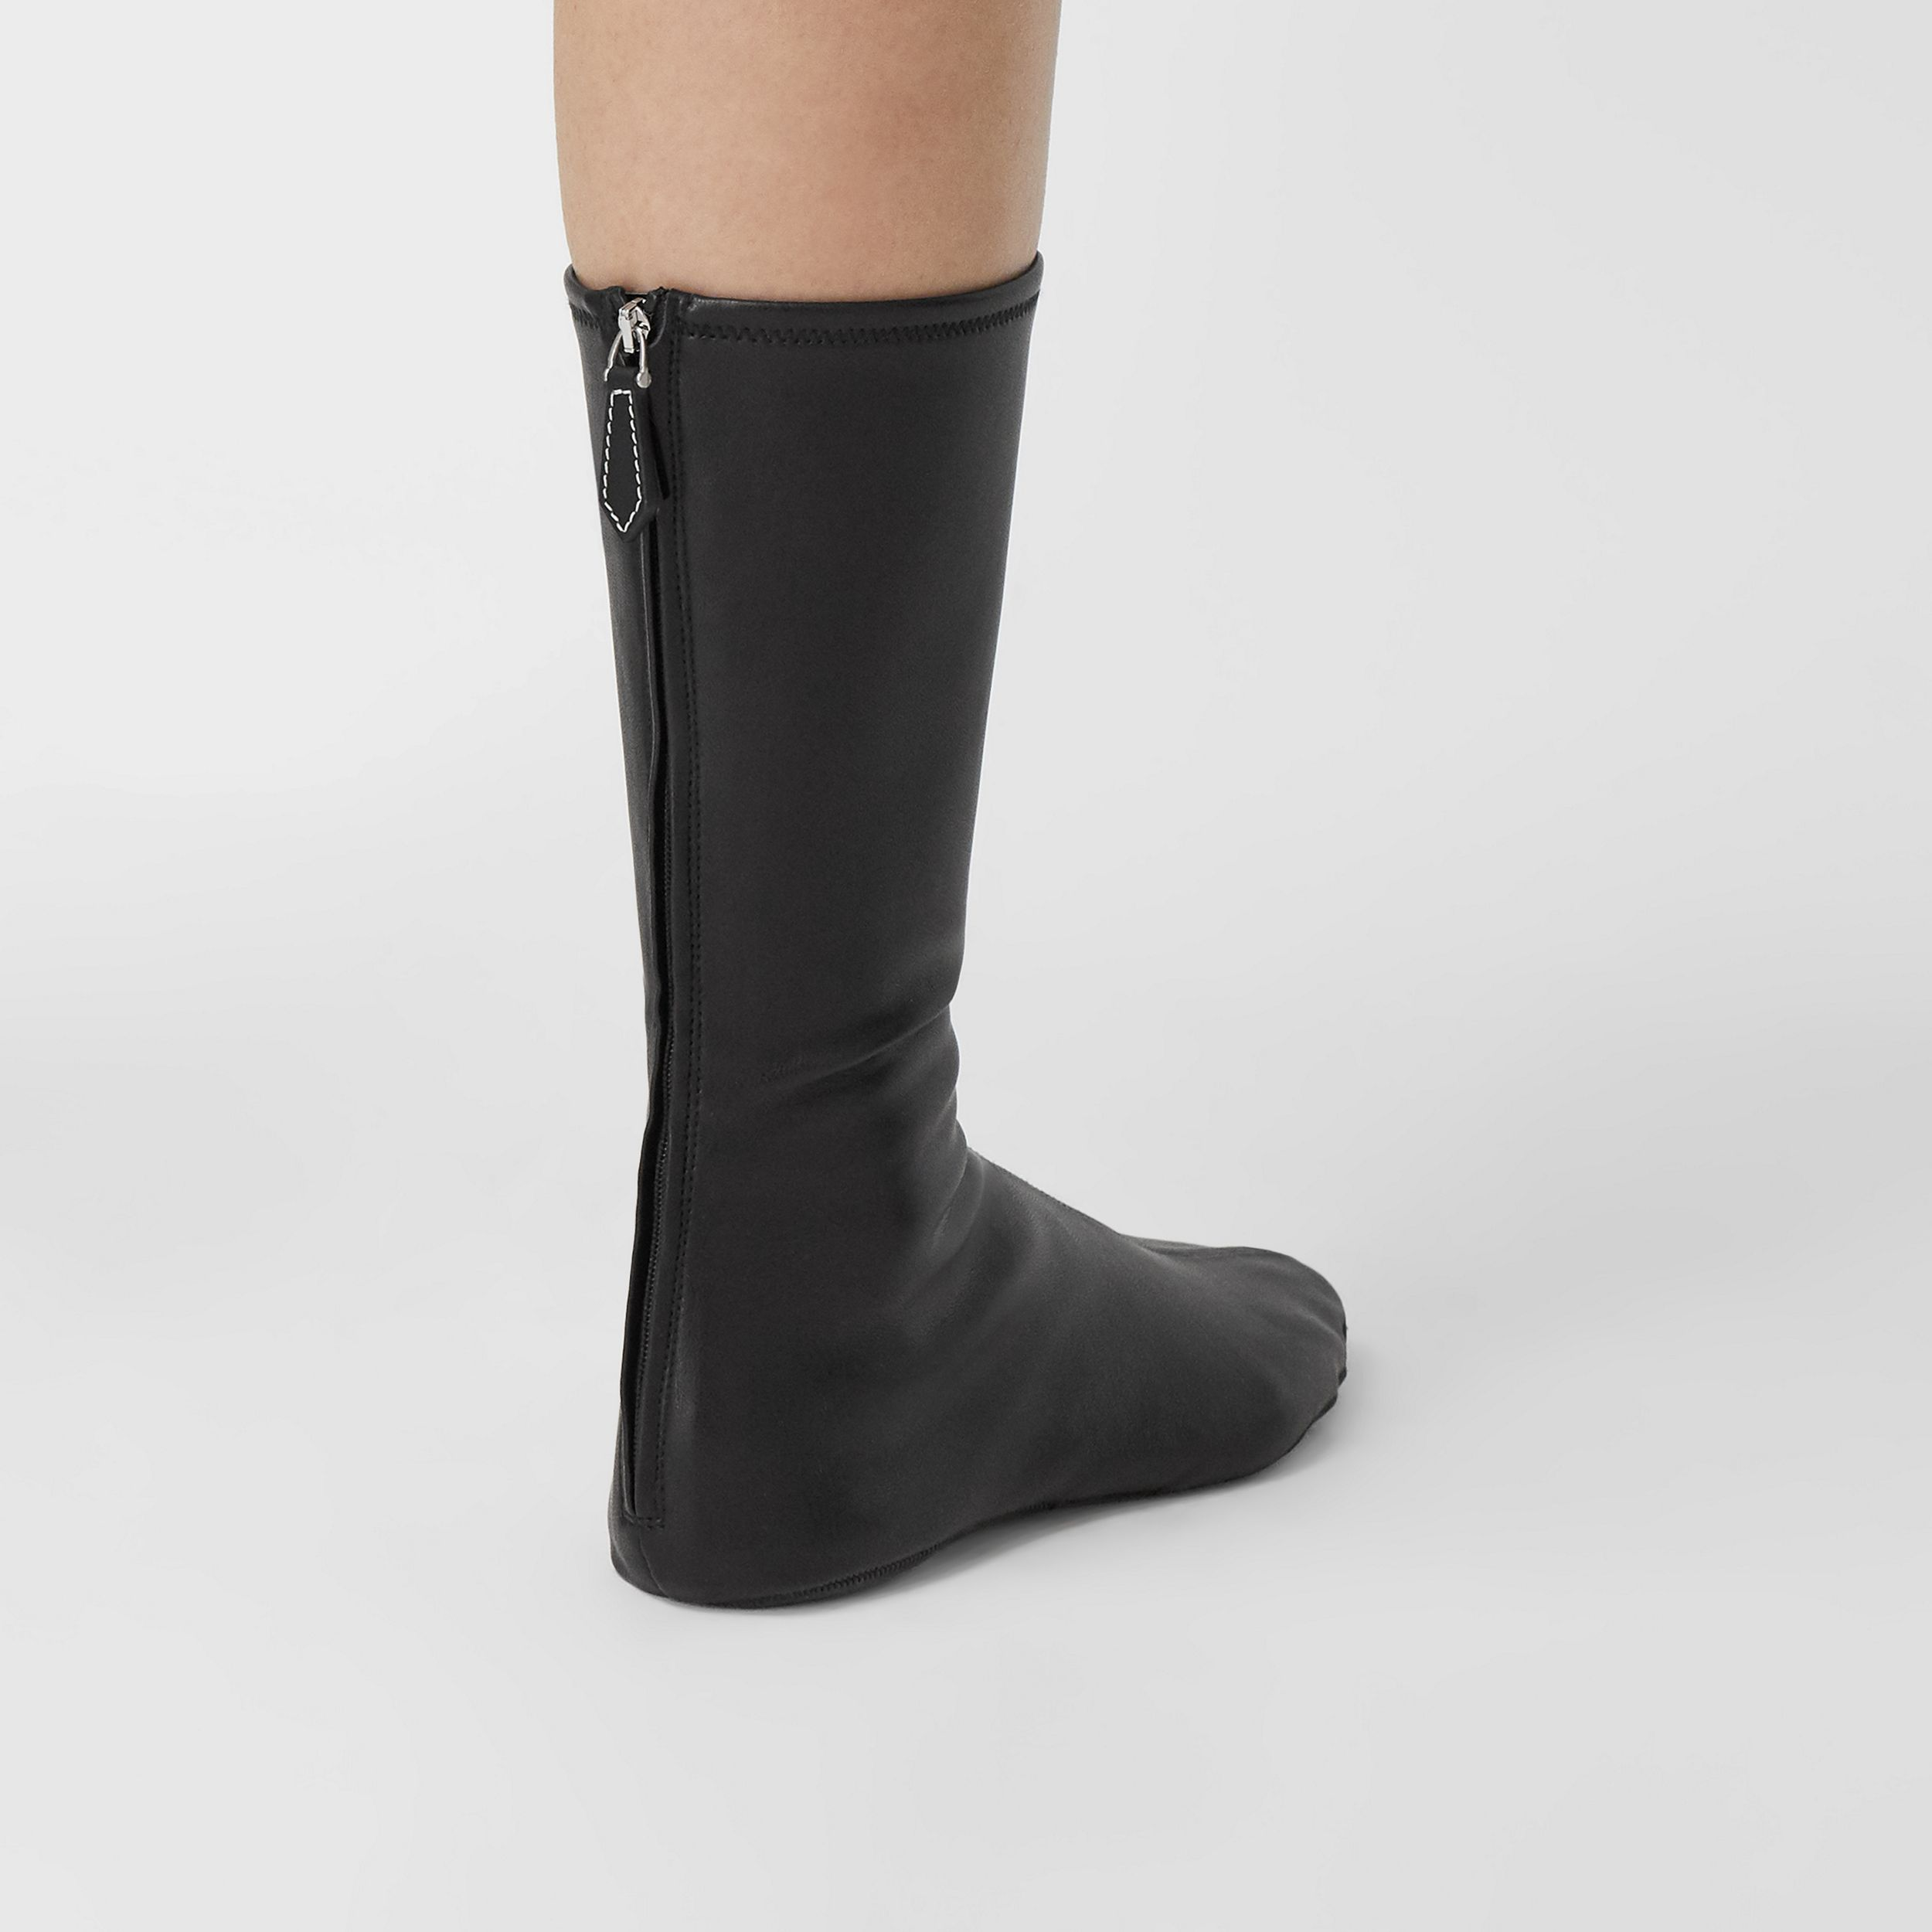 Faux Leather Mid-calf Socks in Black - Women | Burberry United Kingdom - 4